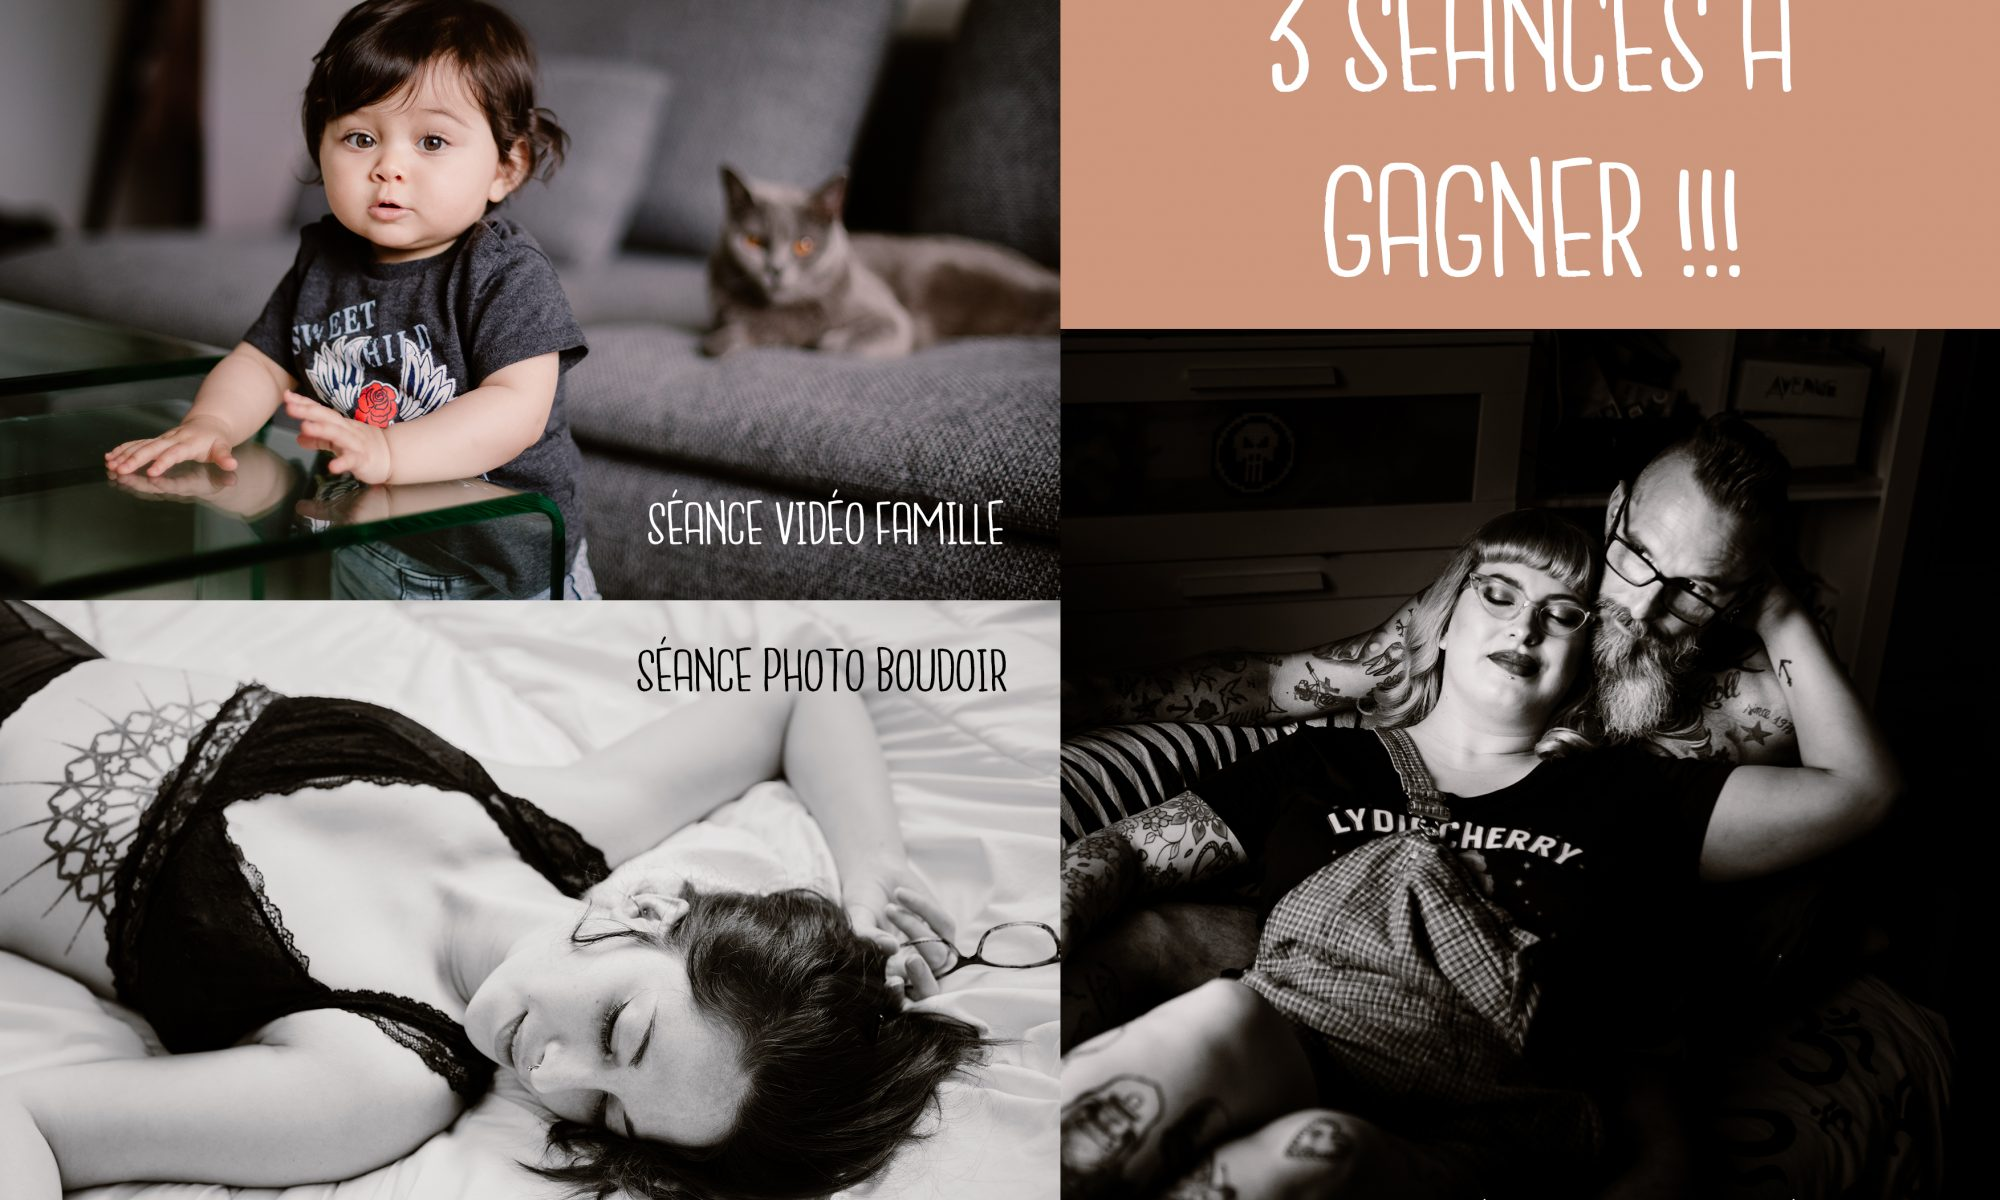 photographe Nantes famille séance photo